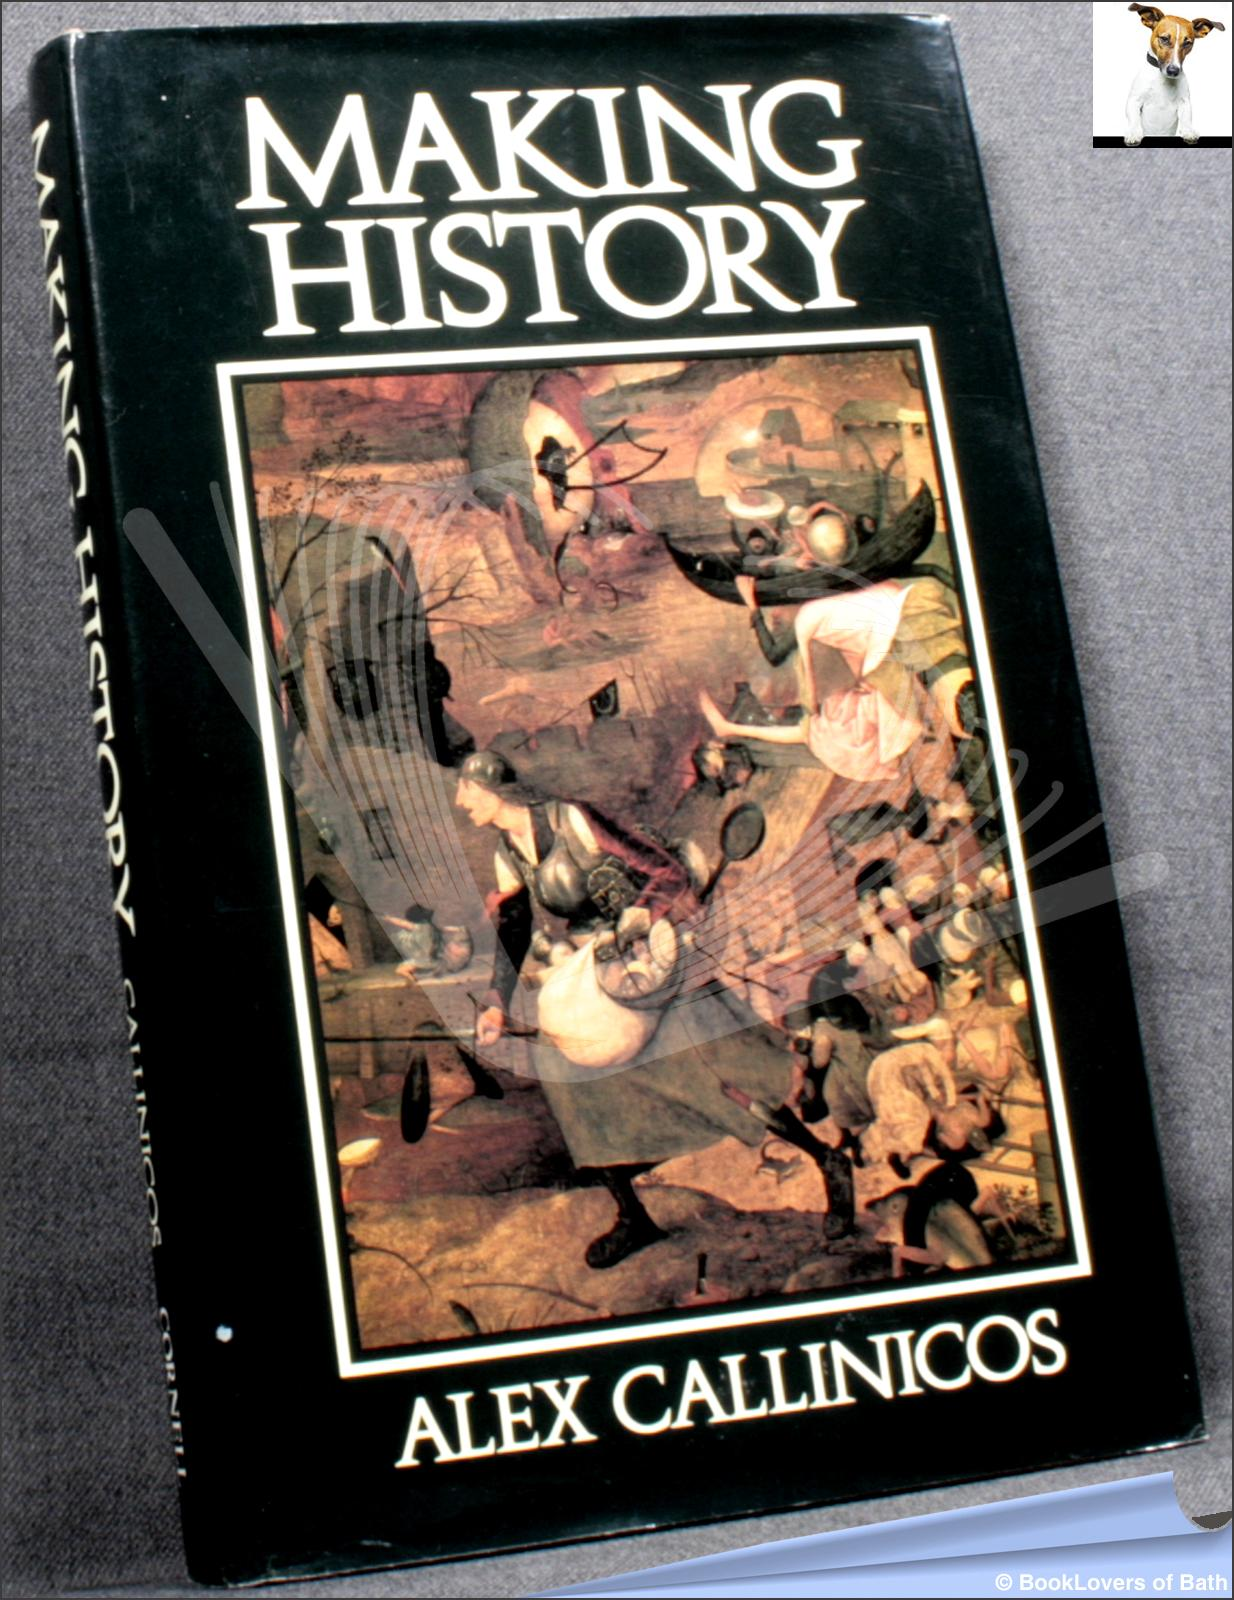 Making History: Agency, Structure and Change in Social Theory - Alex Callinicos